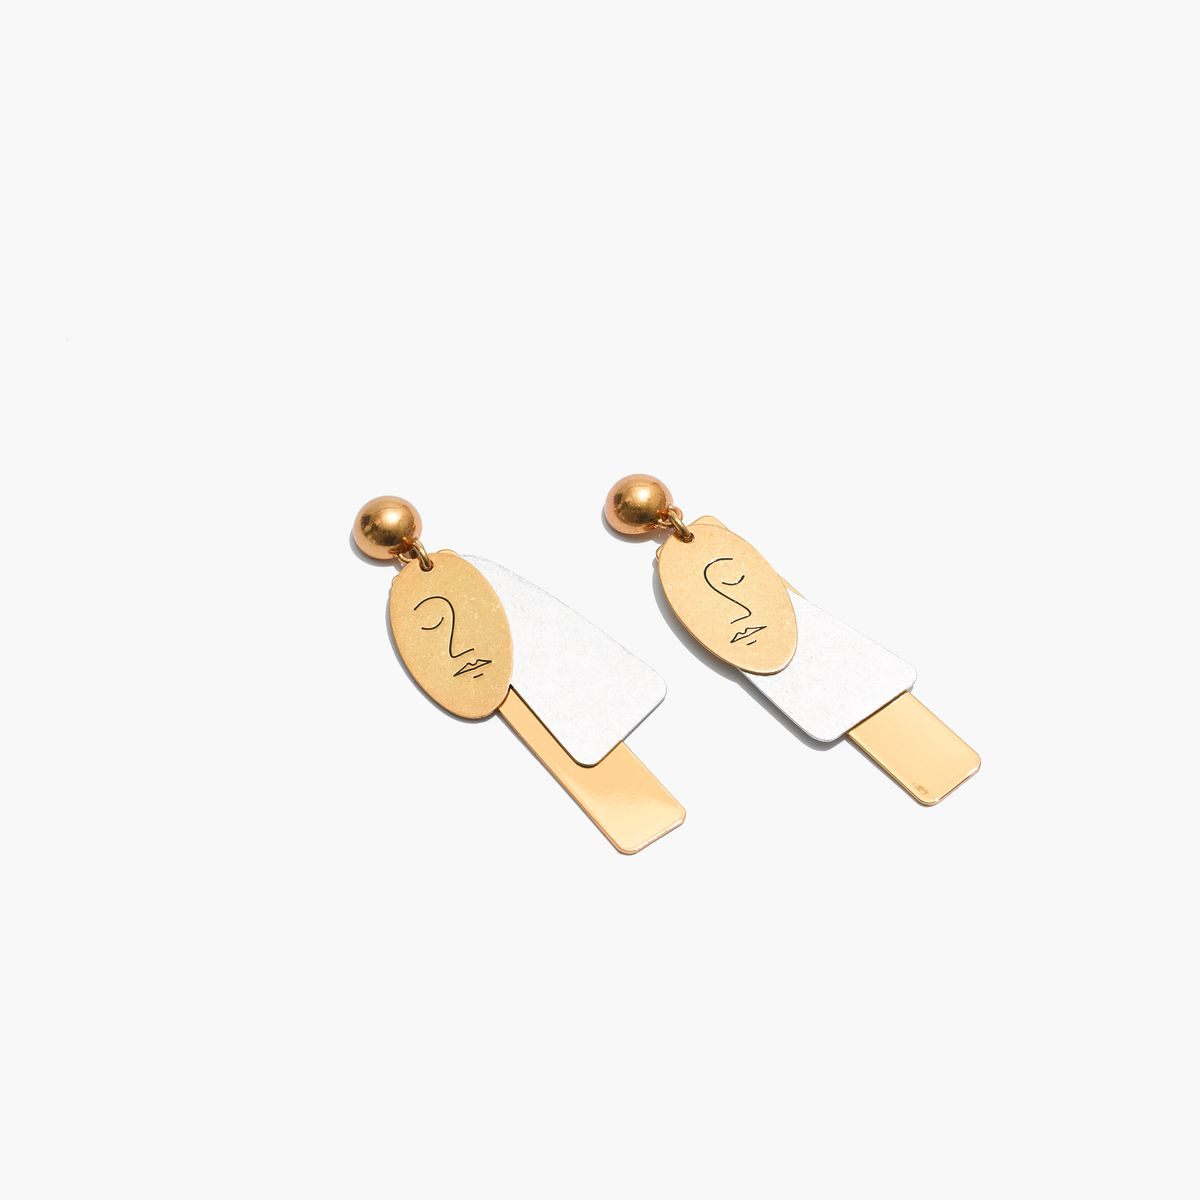 Gold and silver earrings.